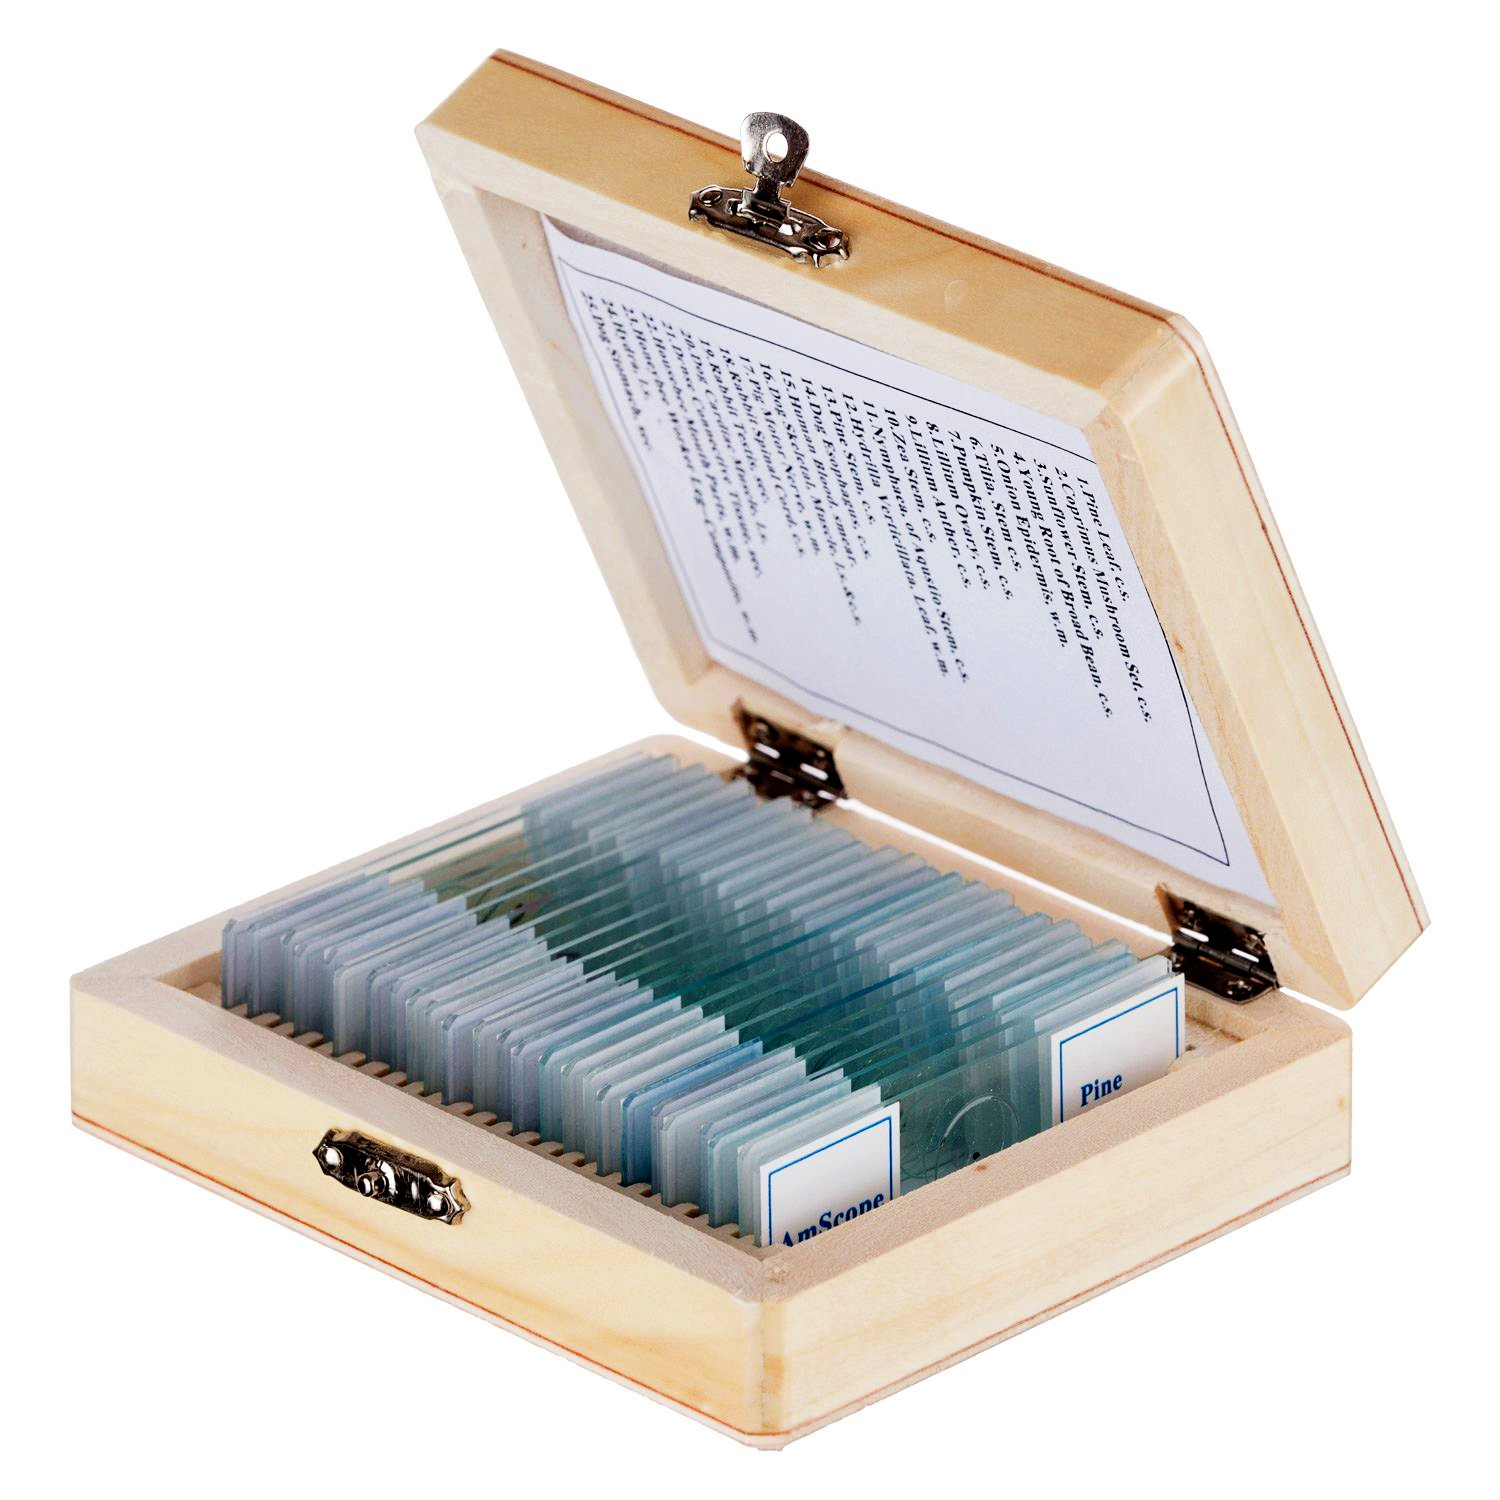 AmScope PS25 Prepared Microscope Slide Set for Basic Biological Science Education, 25 Slides, Includes Fitted Wooden Case by AmScope